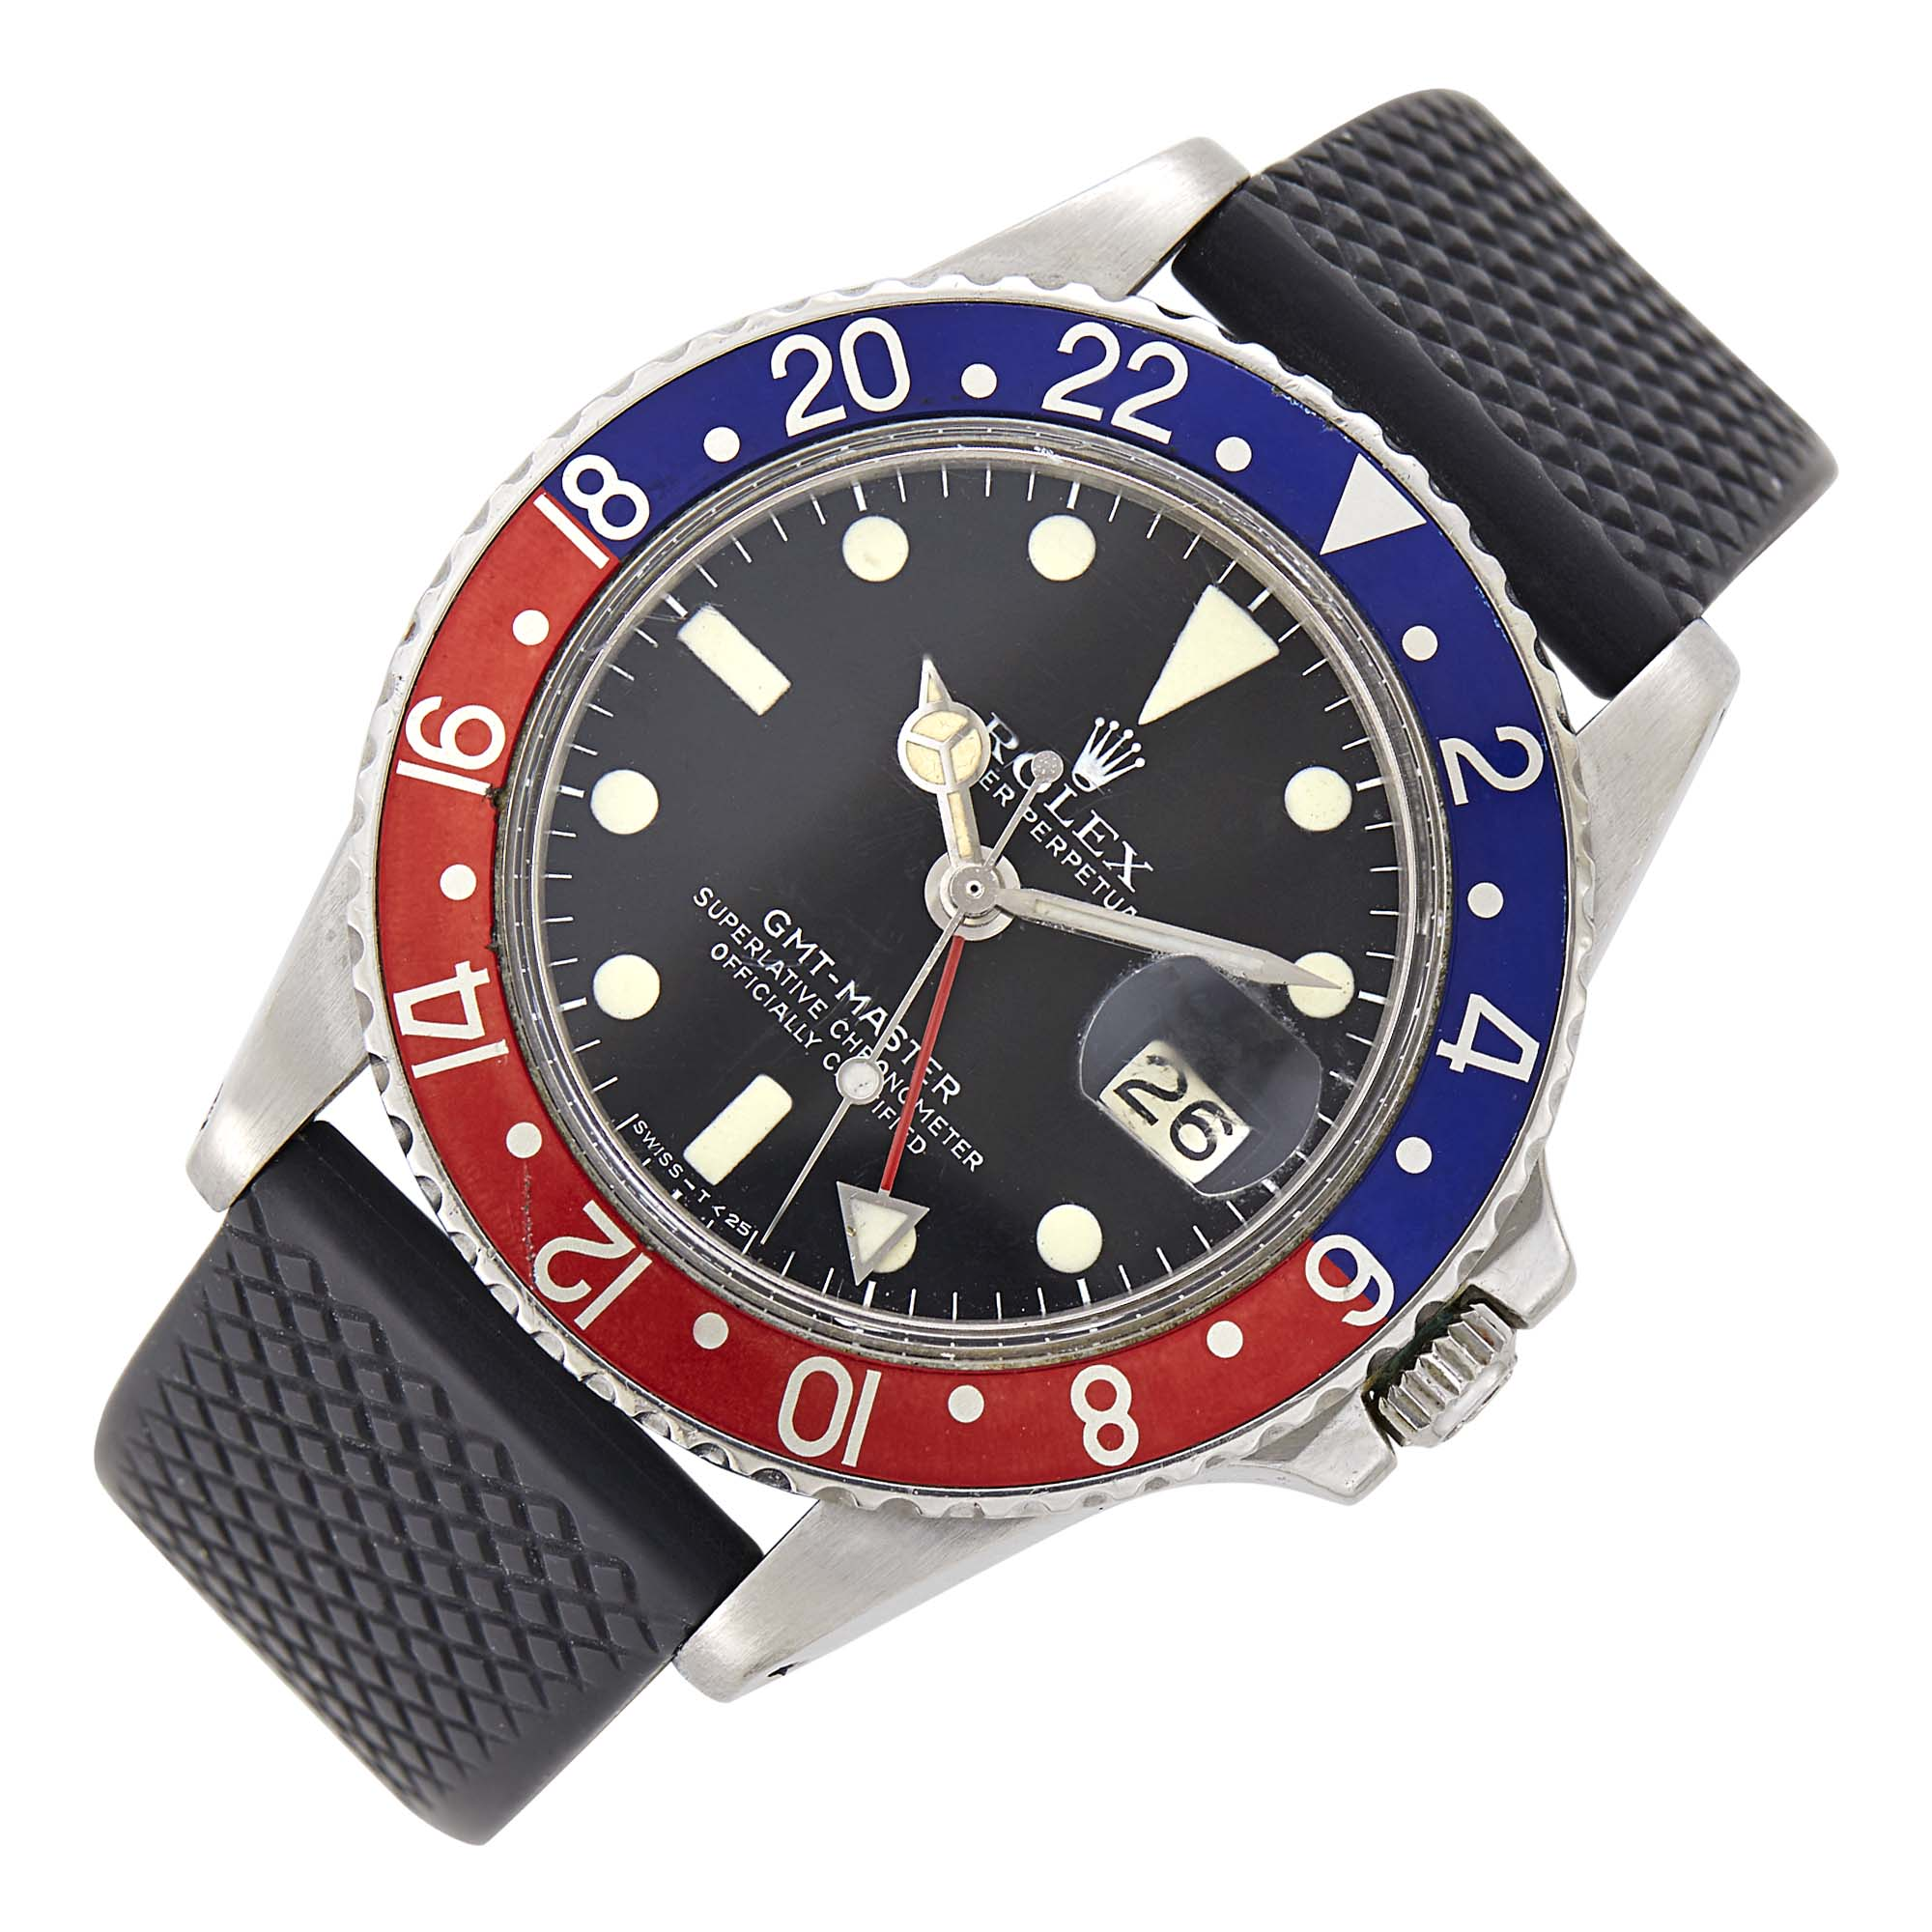 Lot image - Gentlemans Rolex Stainless Steel GMT-Master Oyster Perpetual Wristwatch, Ref. 1675